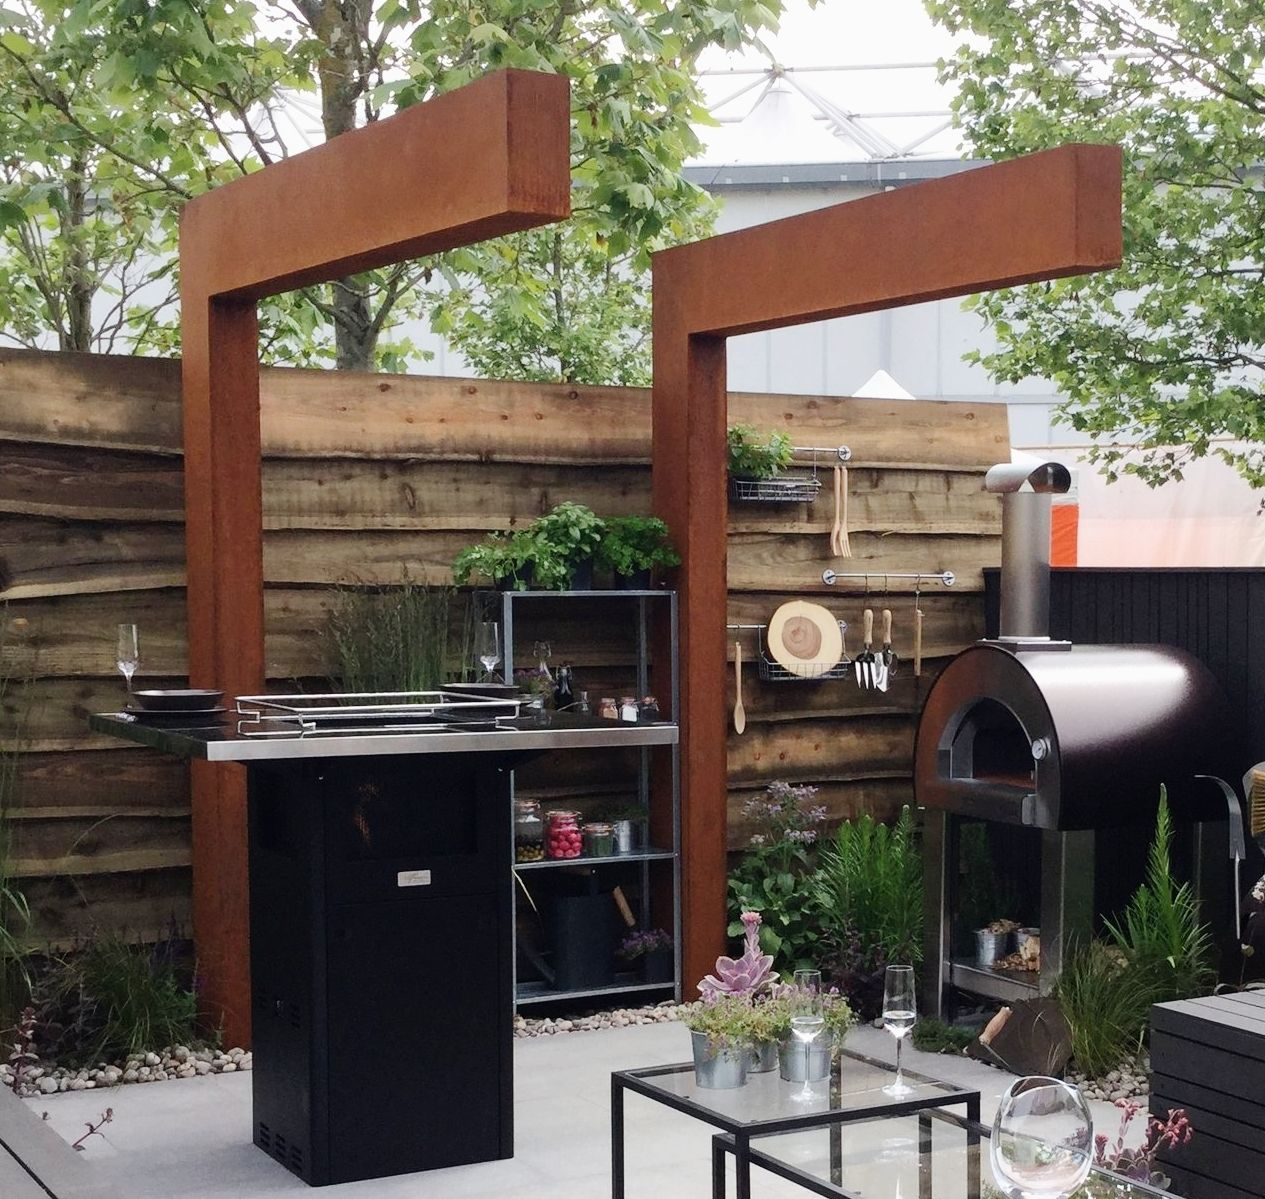 How To Make Your Garden Feel More Intimate With a Pergola is part of Home garden Pergolas - We explain how adding a pergola can create the feeling of intimacy and privacy in your garden